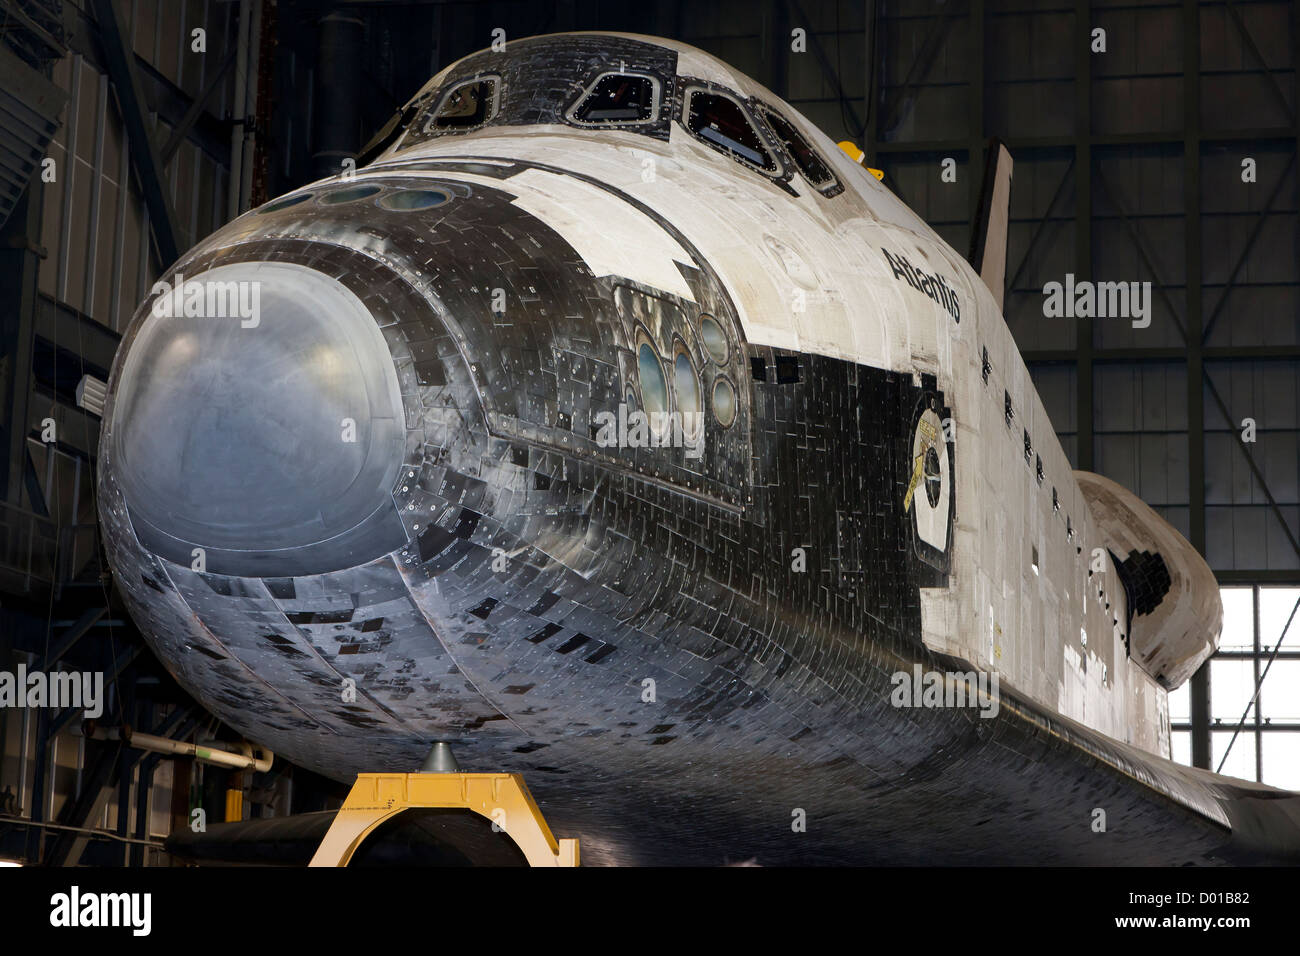 space shuttle atlantis which is orbiter - photo #24